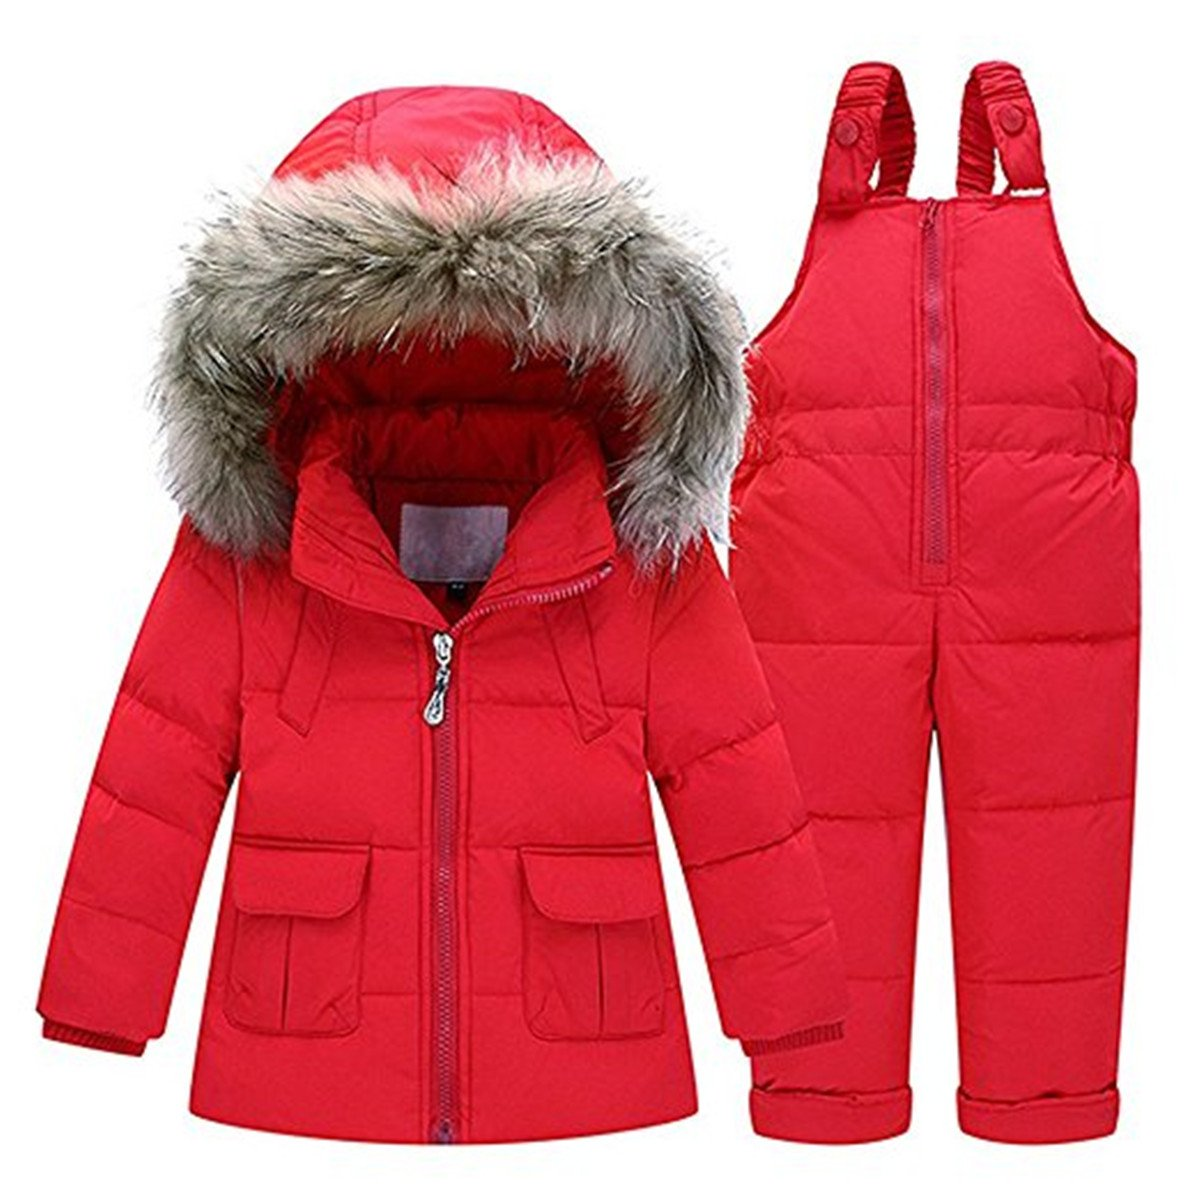 Baby Girls Two Piece Winter Warm Hooded Fur Trim Snowsuit Puffer Down Jacket with Snow Ski Bib Pants Outfits by JELEUON